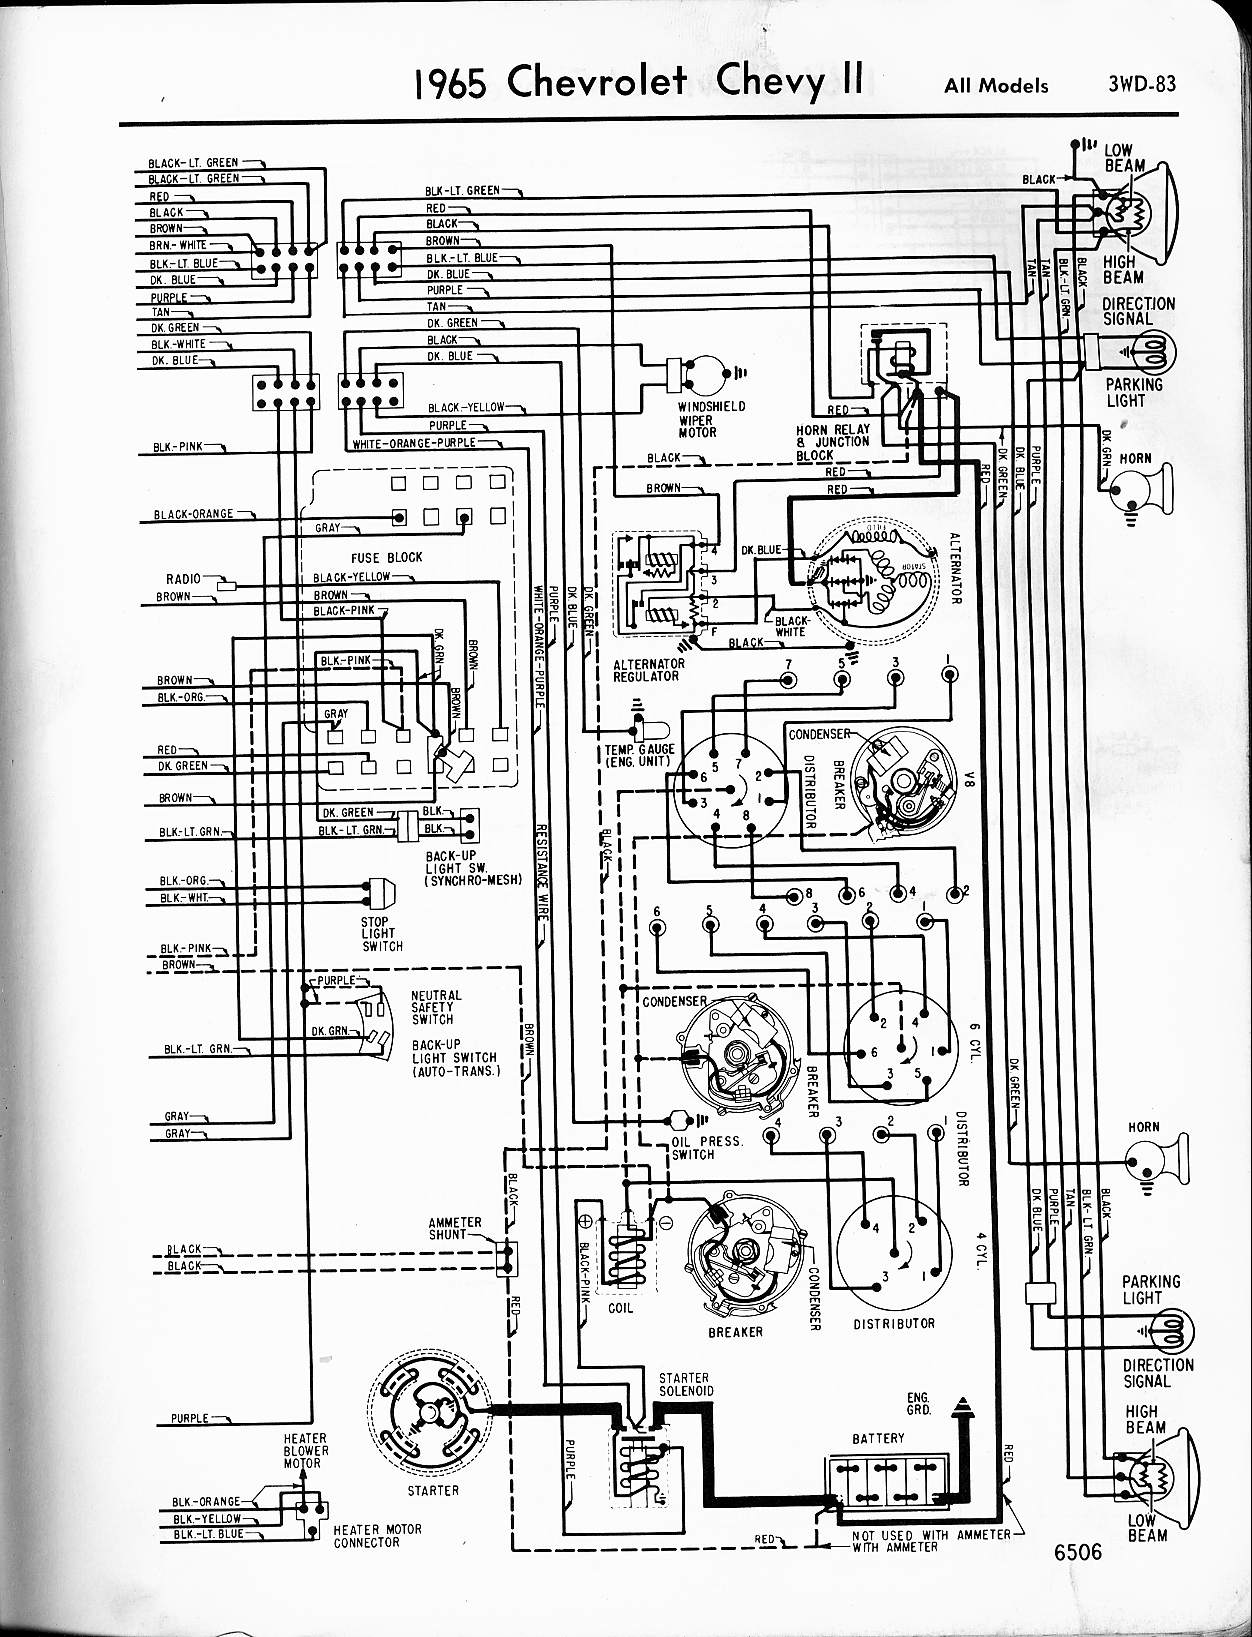 MWireChev65_3WD 083 chevy diagrams 1968 chevelle ignition switch wiring diagram at eliteediting.co